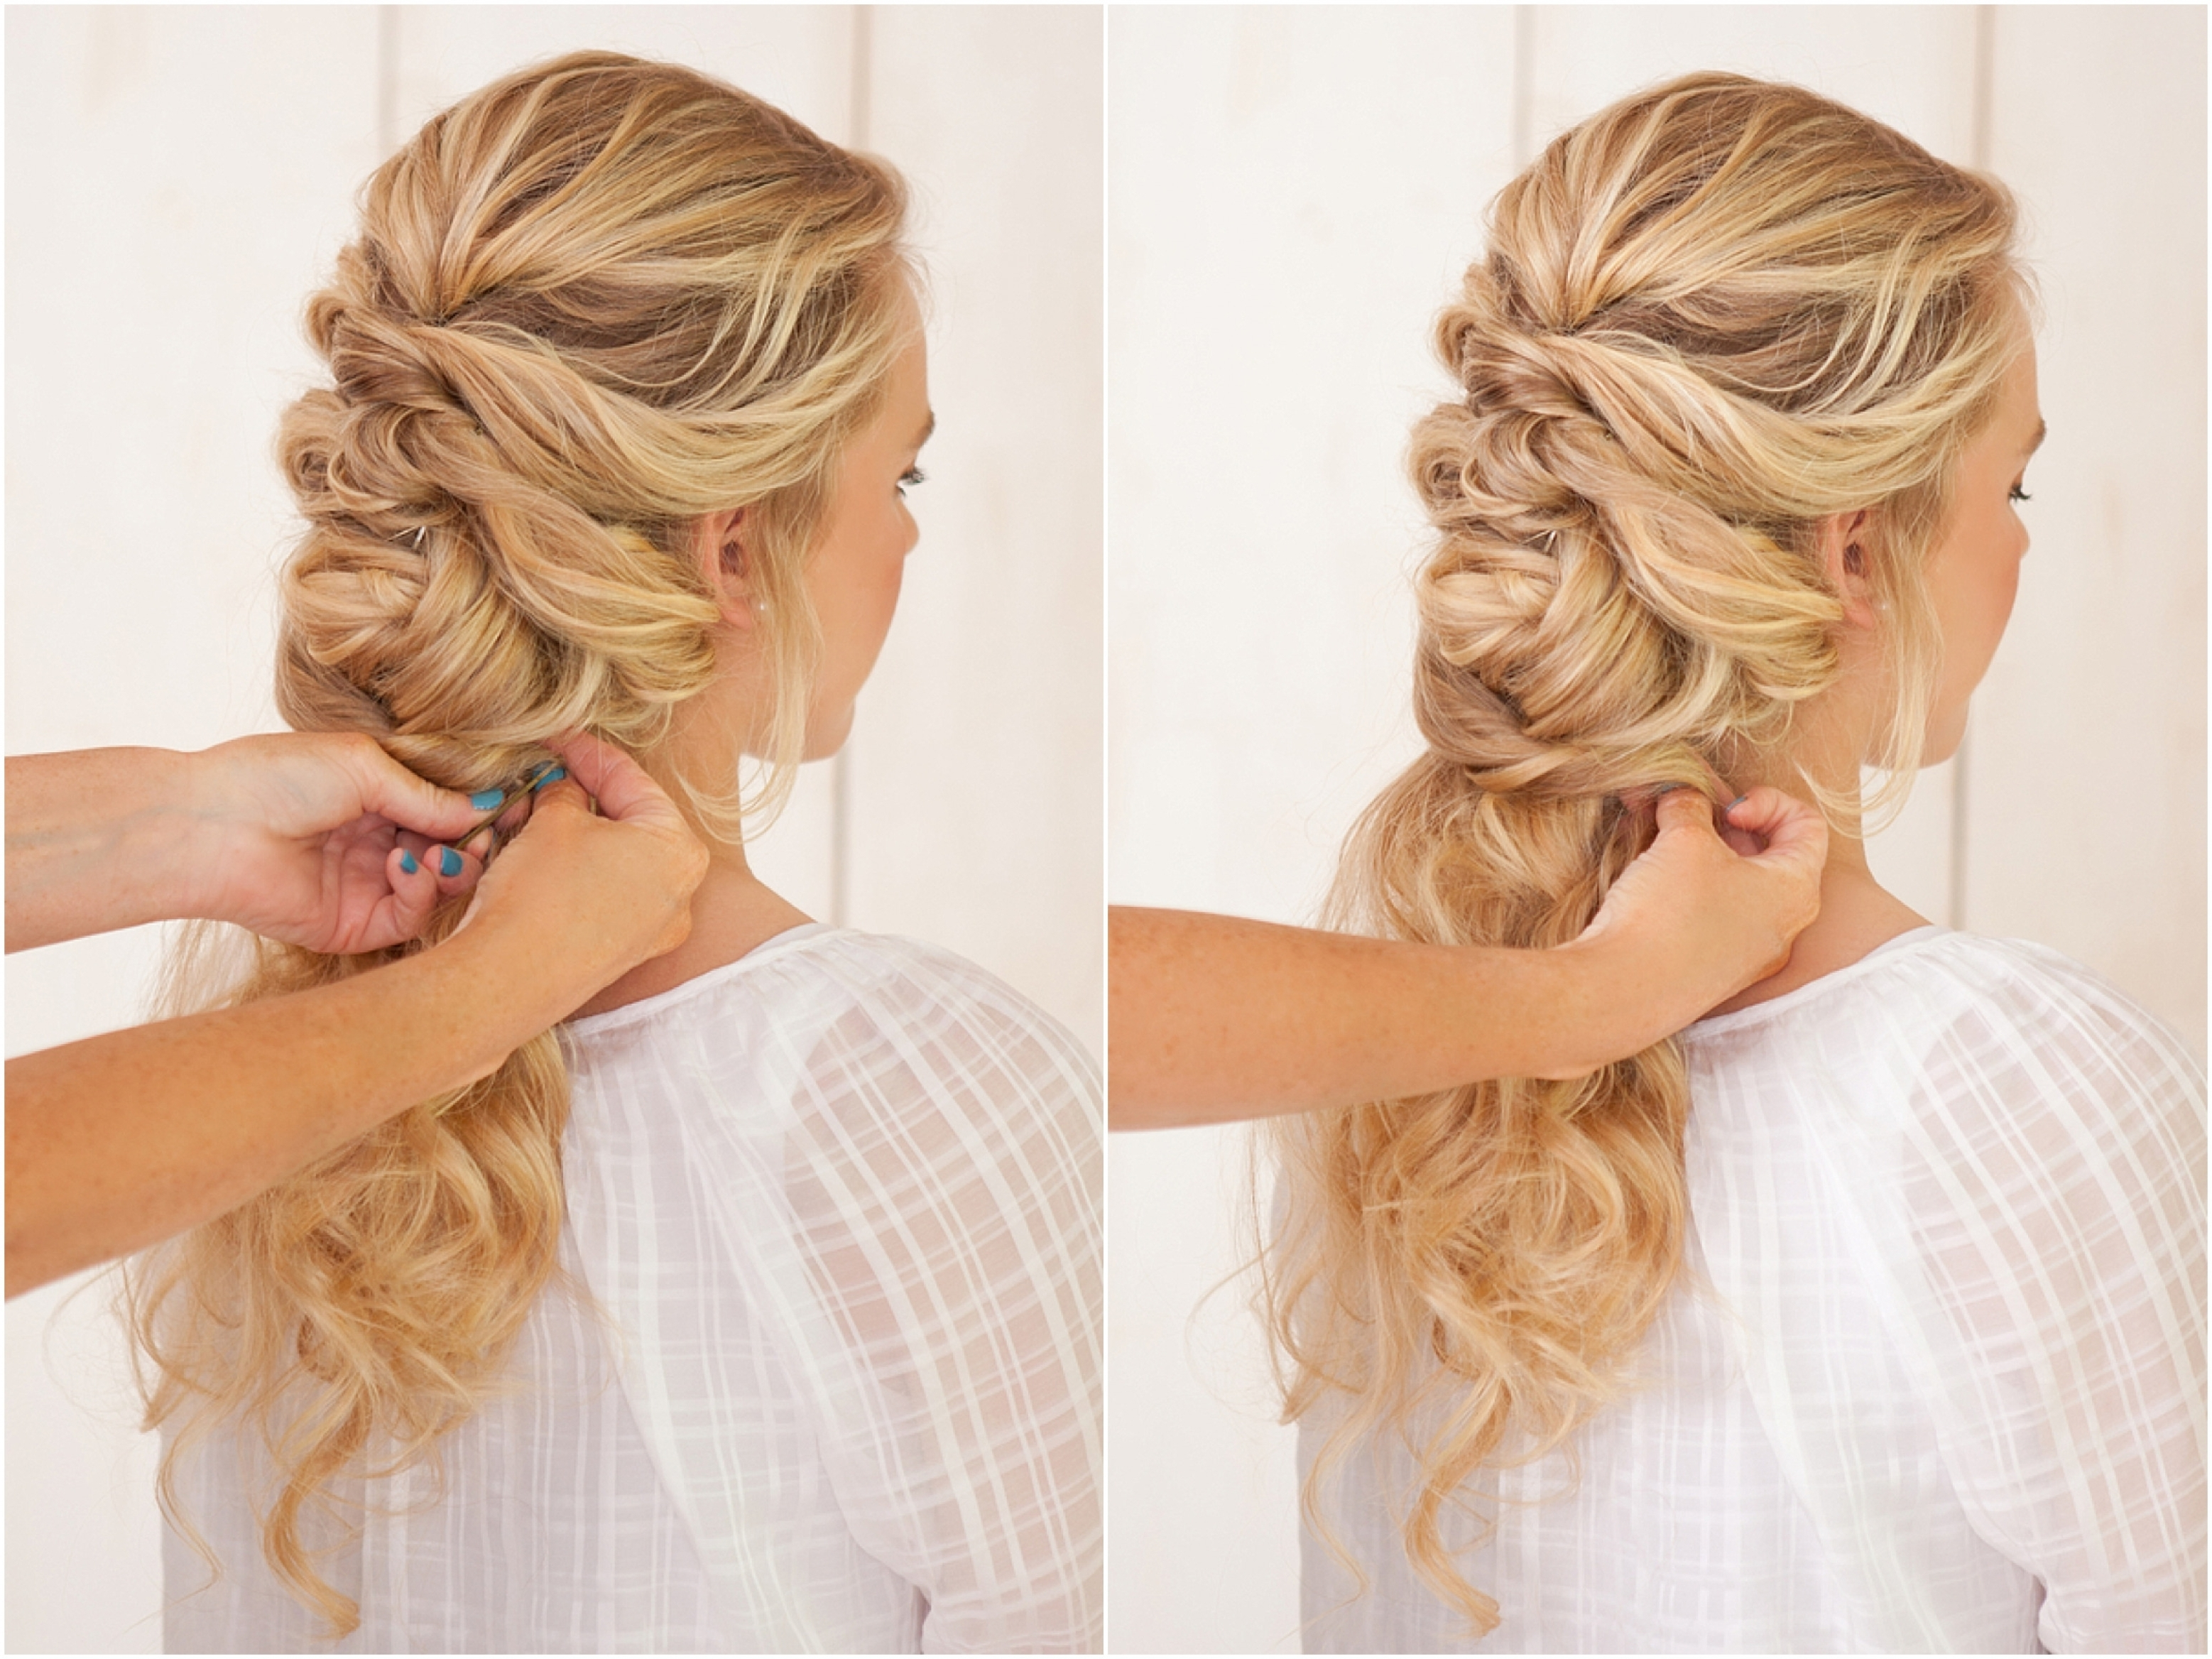 Plait Wedding Hairstyles French Braid Wedding Hairstyle The Bride Regarding Favorite Wedding Hairstyles With Plaits (View 6 of 15)